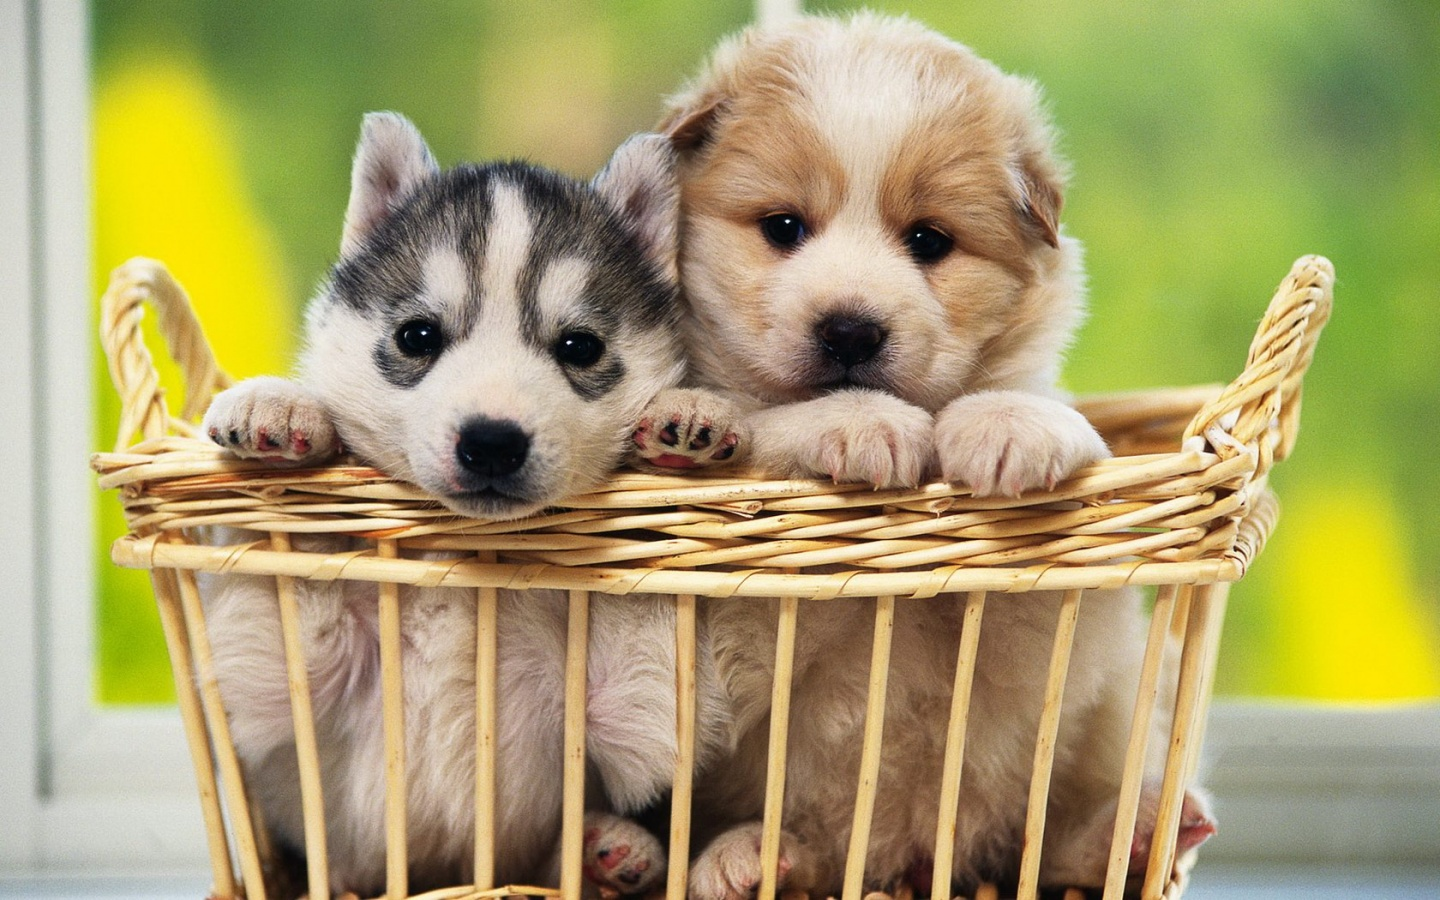 Dogs HD Wallpapers Cute Dogs Wallpapers HD Cute Dogs Wallpapers 1440x900